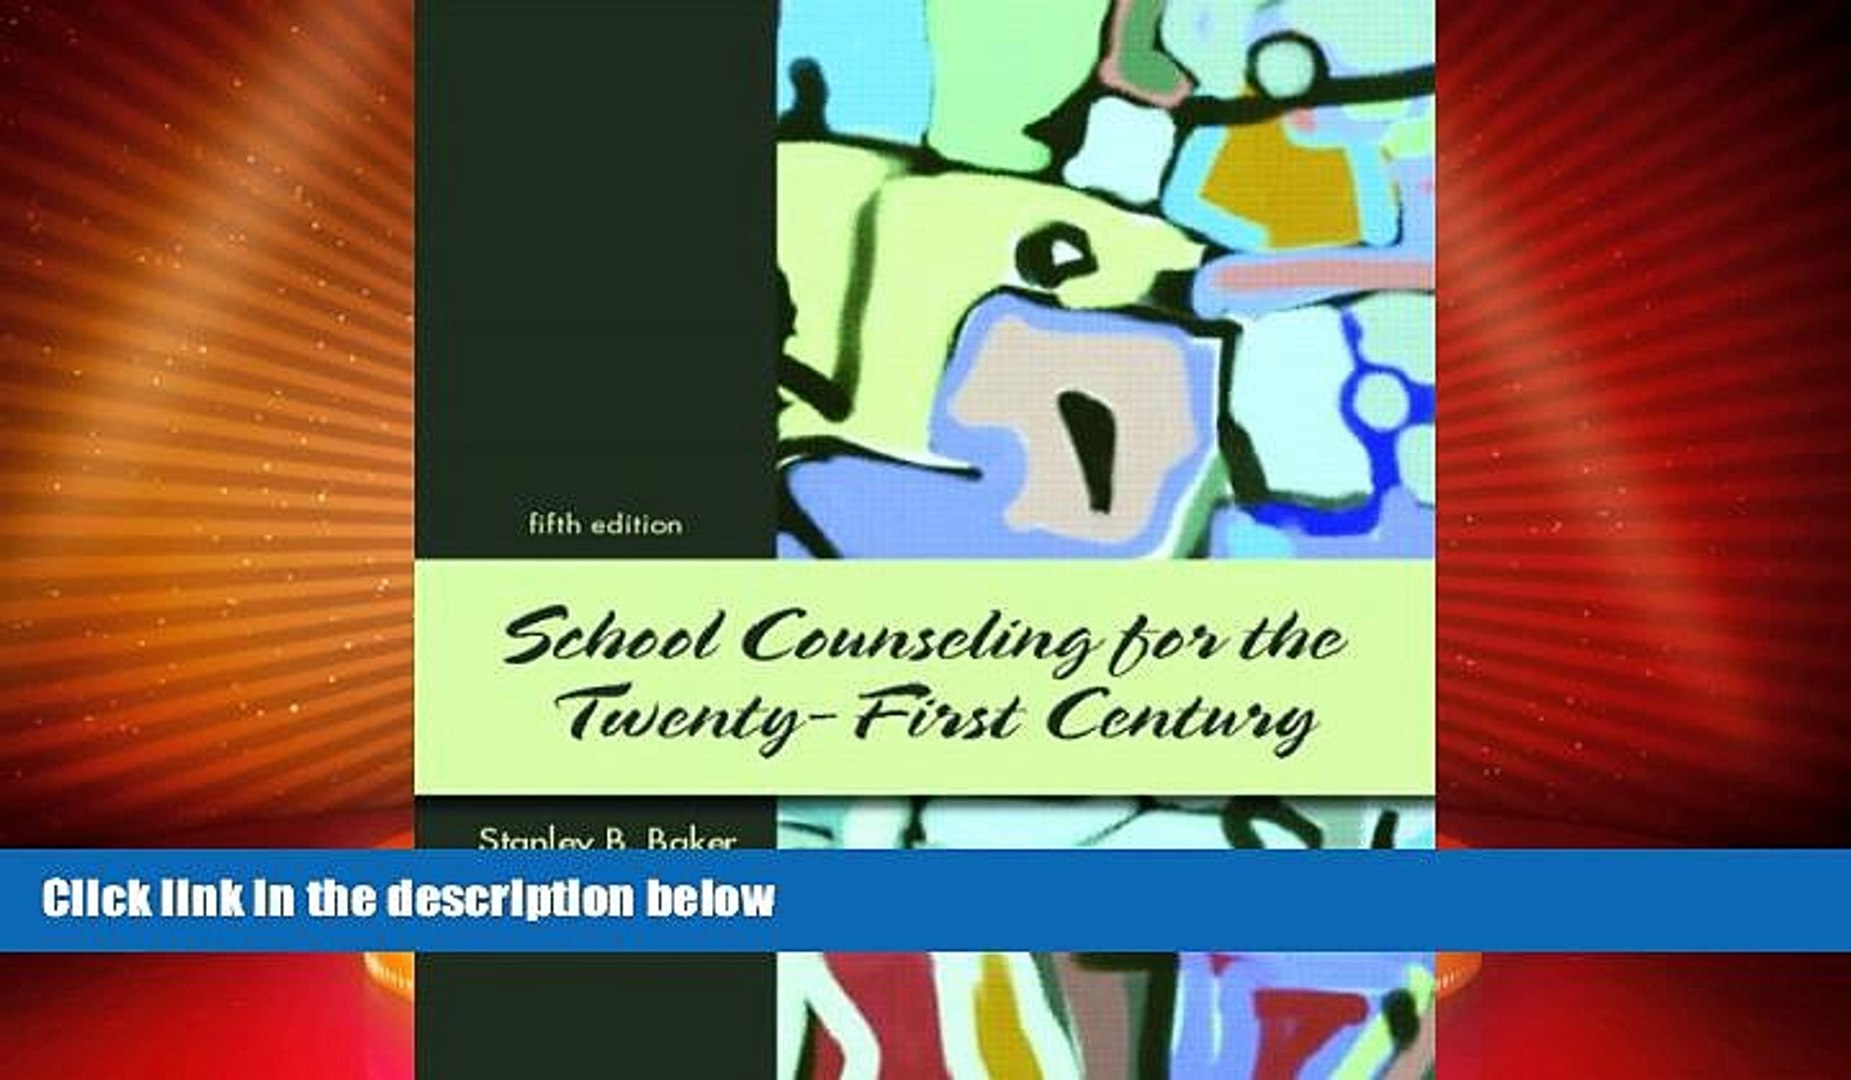 Price School Counseling for the 21st Century (5th Edition) Stanley B. Baker On Audio